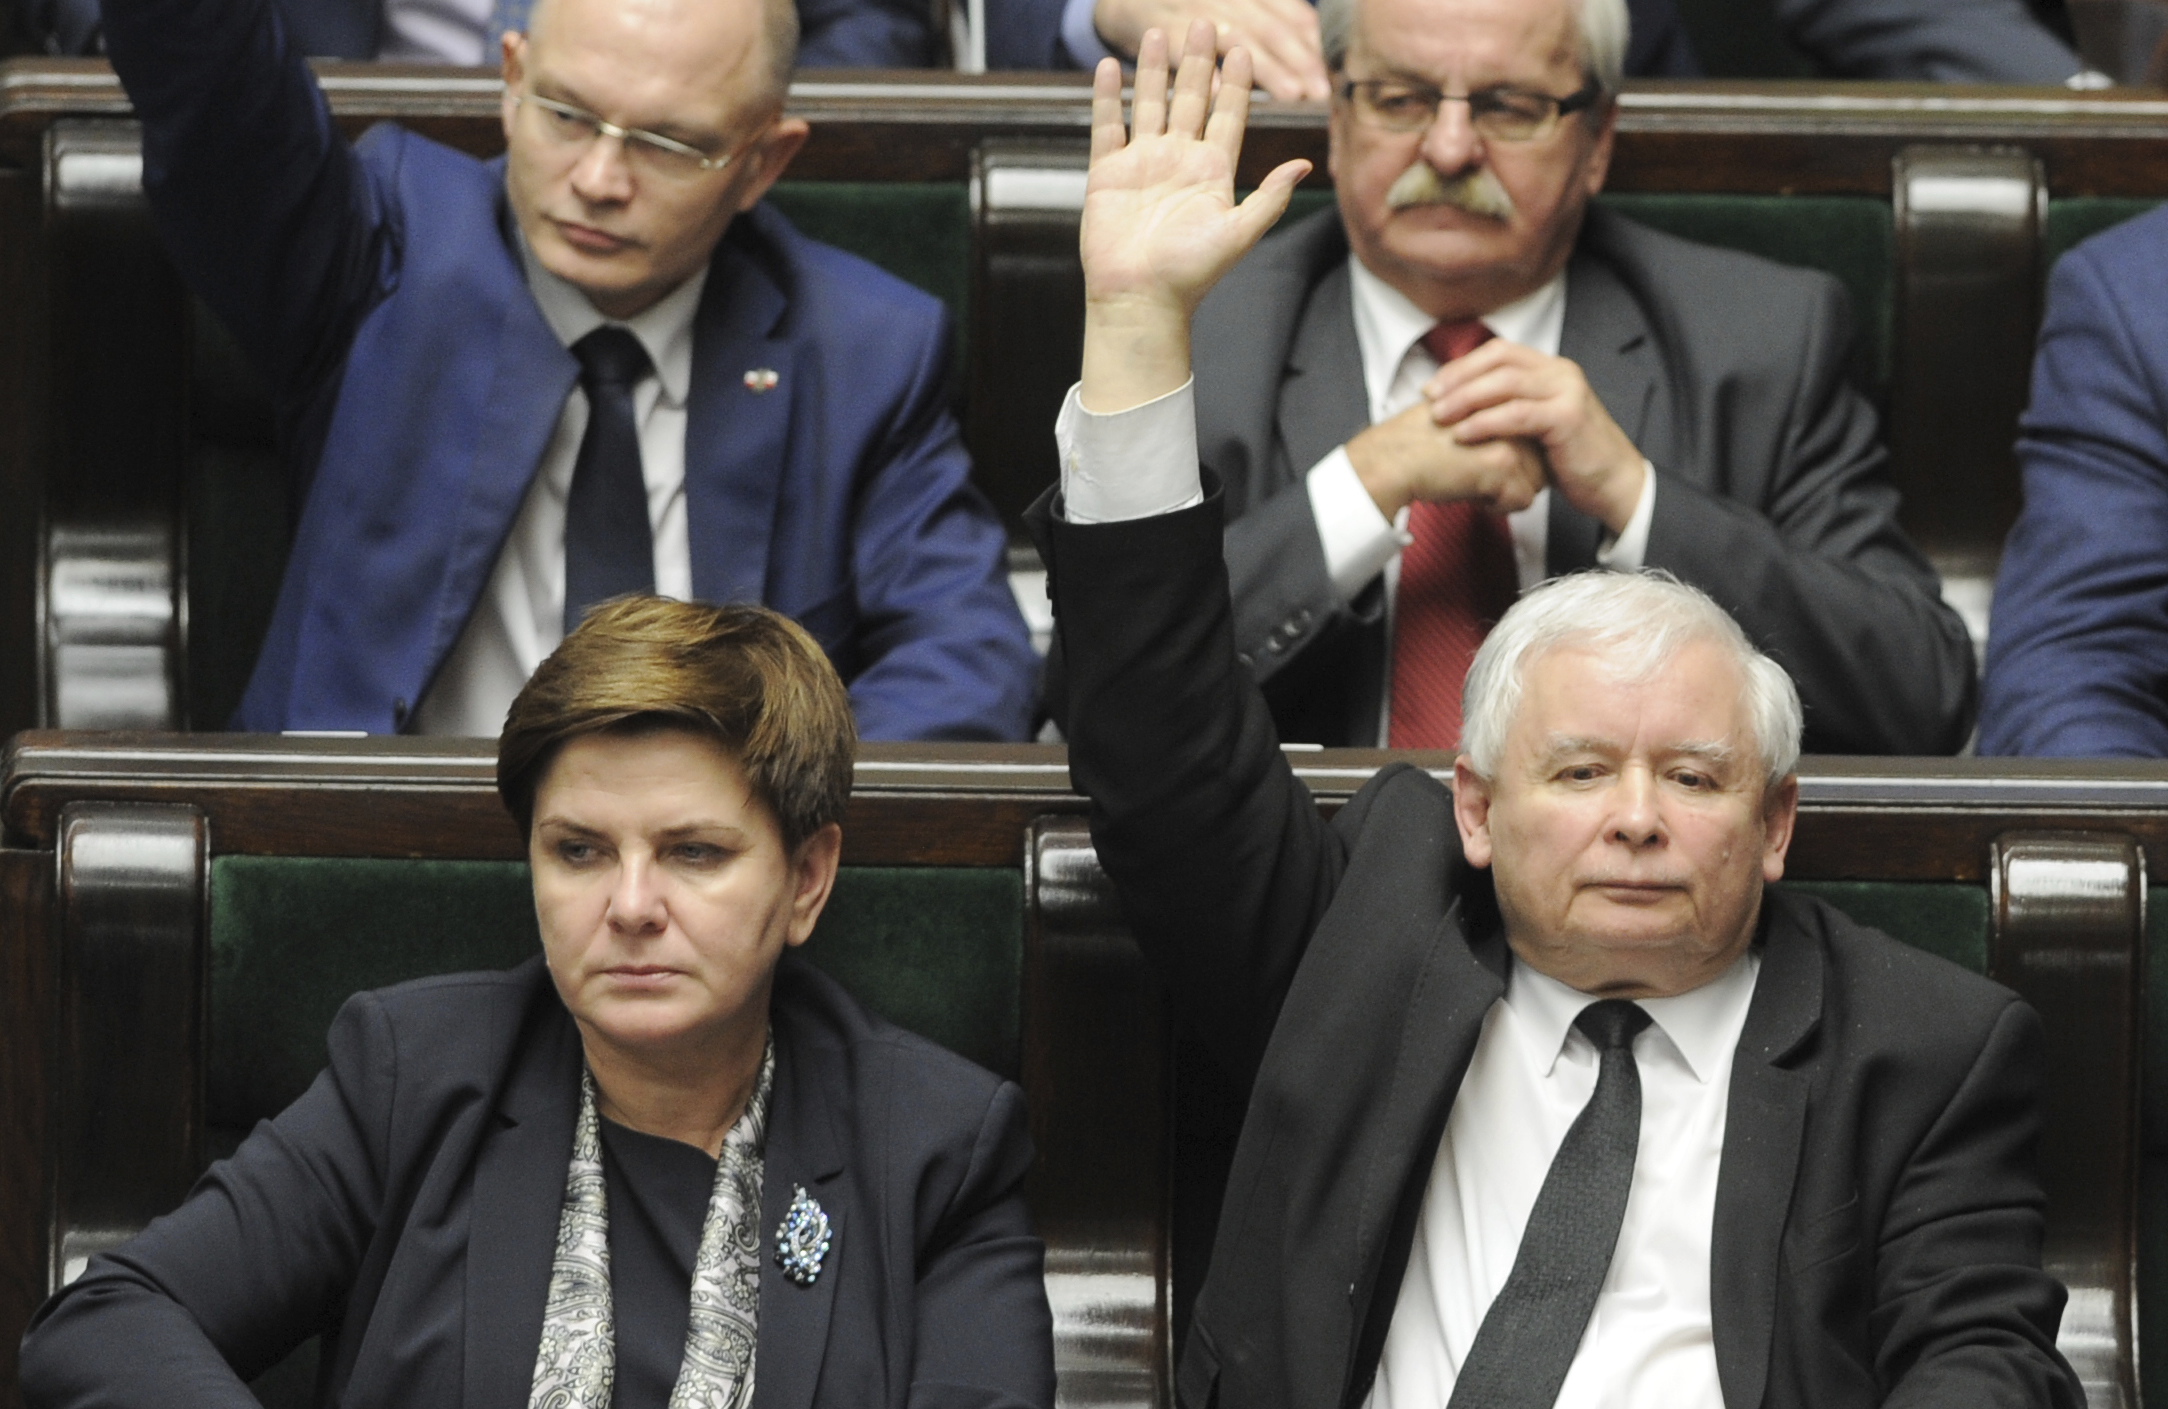 FILE - In this Dec. 22, 2015 file photo the leader of the ruling Law and Justice party, Jaroslaw Kaczynski, right, raises his hand during one of the votes passing a new law on the constitutional court, as Prime Minister Beata Szydlo, left, looks on, in the parliament in Warsaw, Poland.  Prime Minister Szydlo sent a tweet early Tuesday, Dec. 5, 2017 that seems to read like a farewell, amid rumors in Warsaw that she might be replaced by Finance Minister Mateusz Morawiecki.  (AP Photo/Alik Keplicz, file)